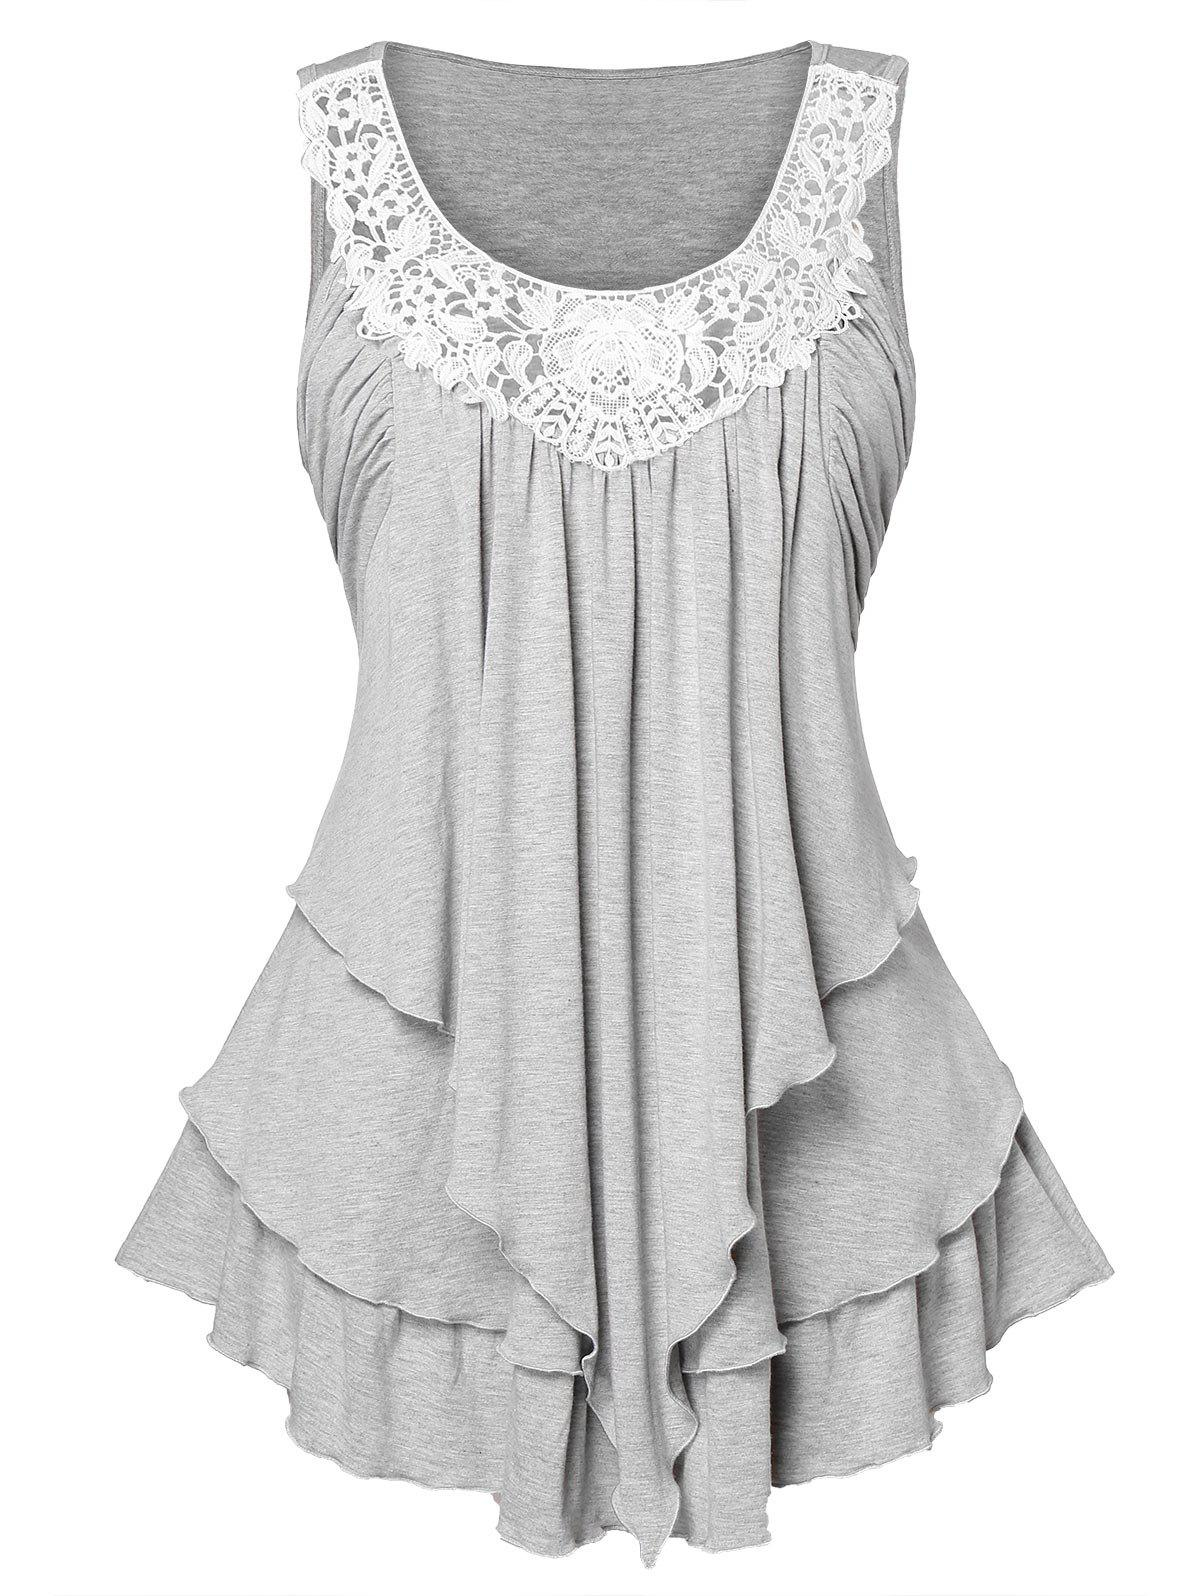 Chic Lace Panel Plus Size Layered Tank Top